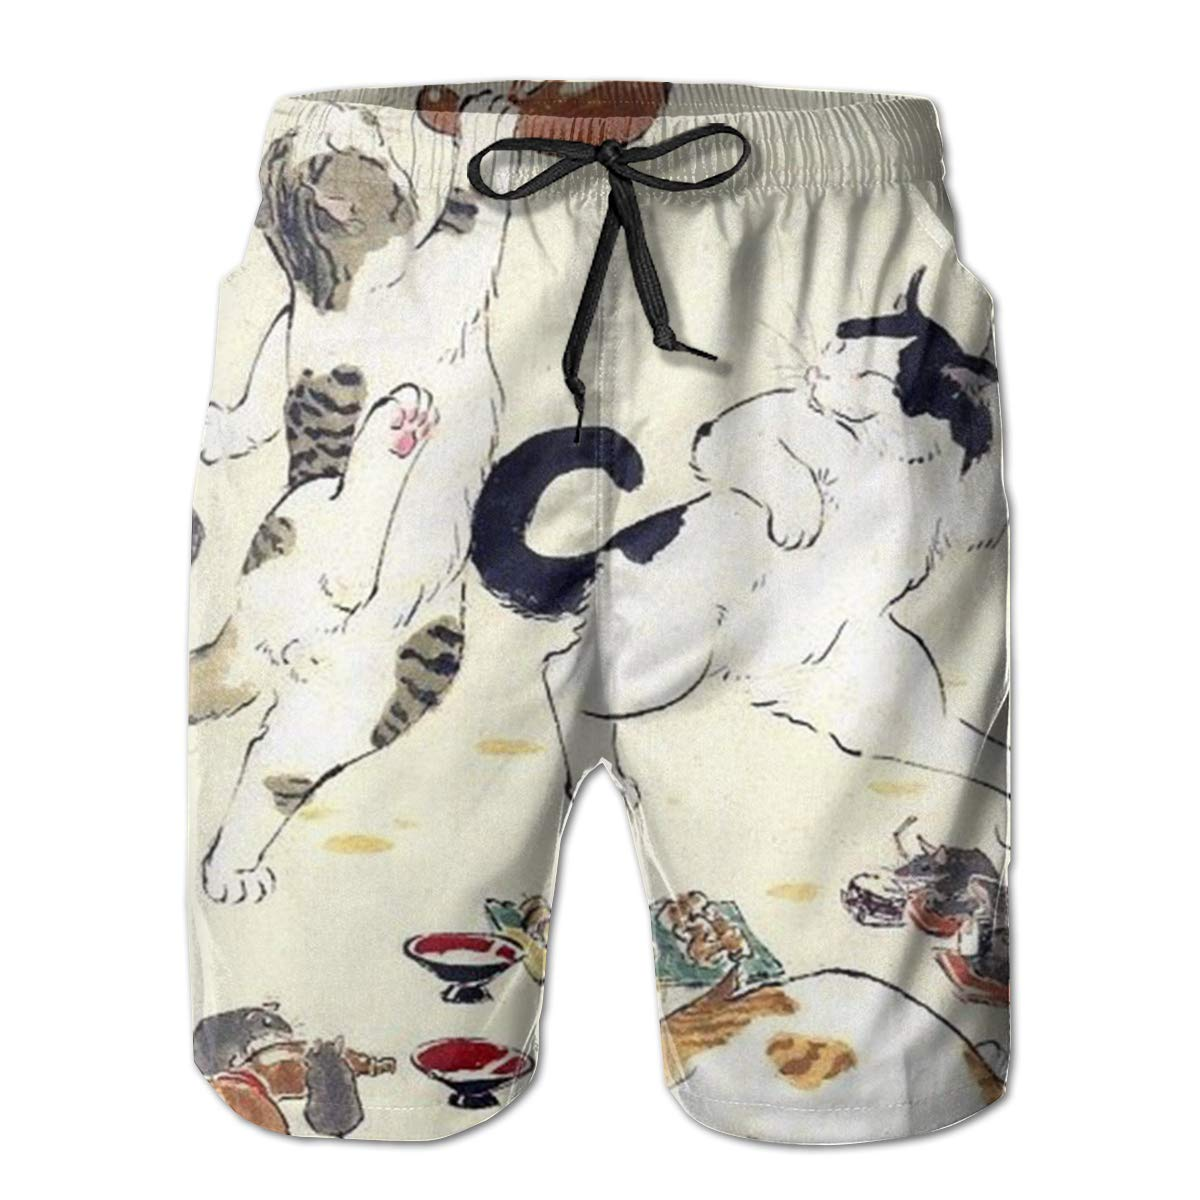 Mens Swim Trunks Lovely Playful Cat Quick Dry Beach Board Shorts with Mesh Lining